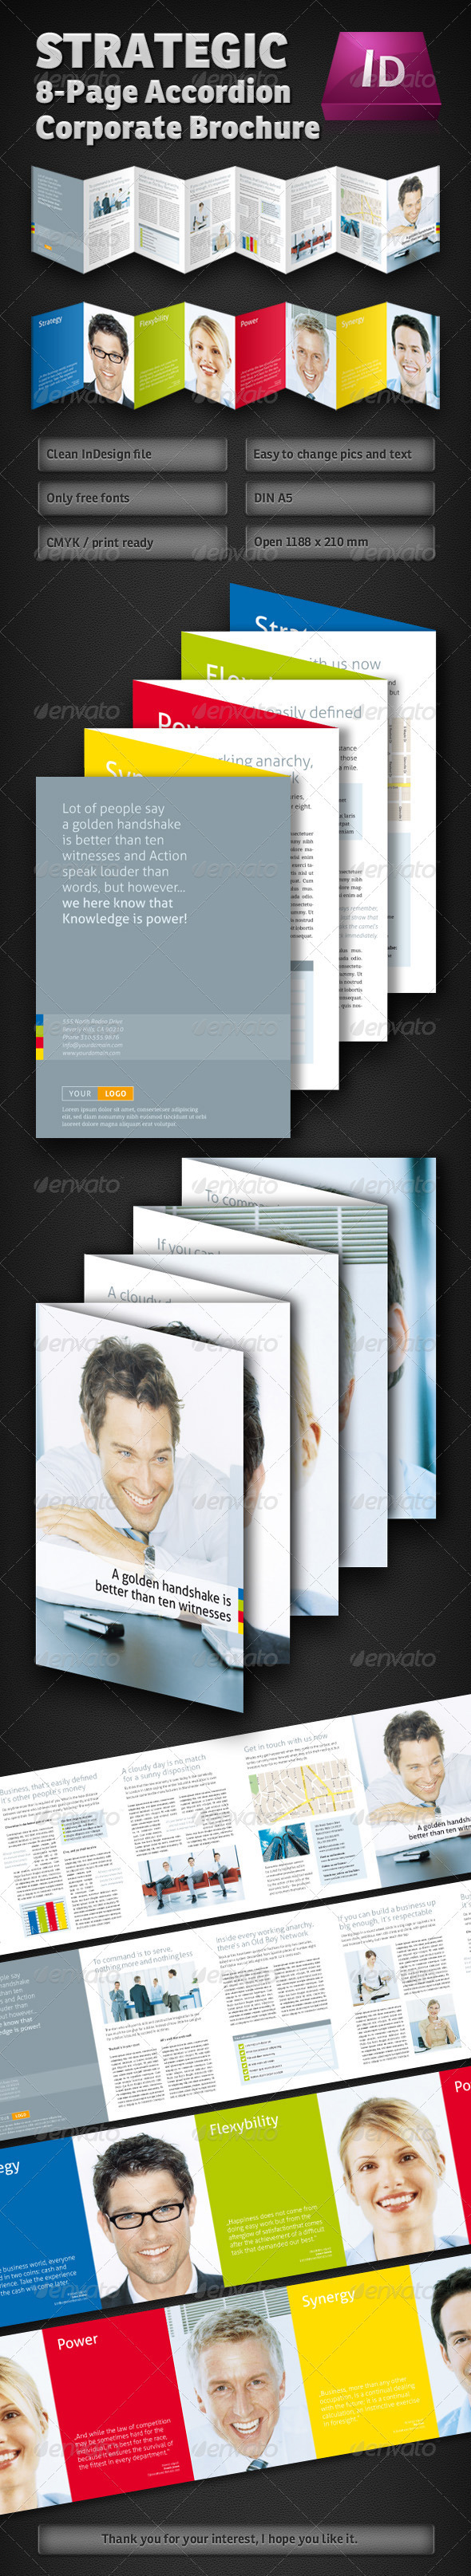 Strategic 8-Page Accordion Fold Brochure - Clubs & Parties Events